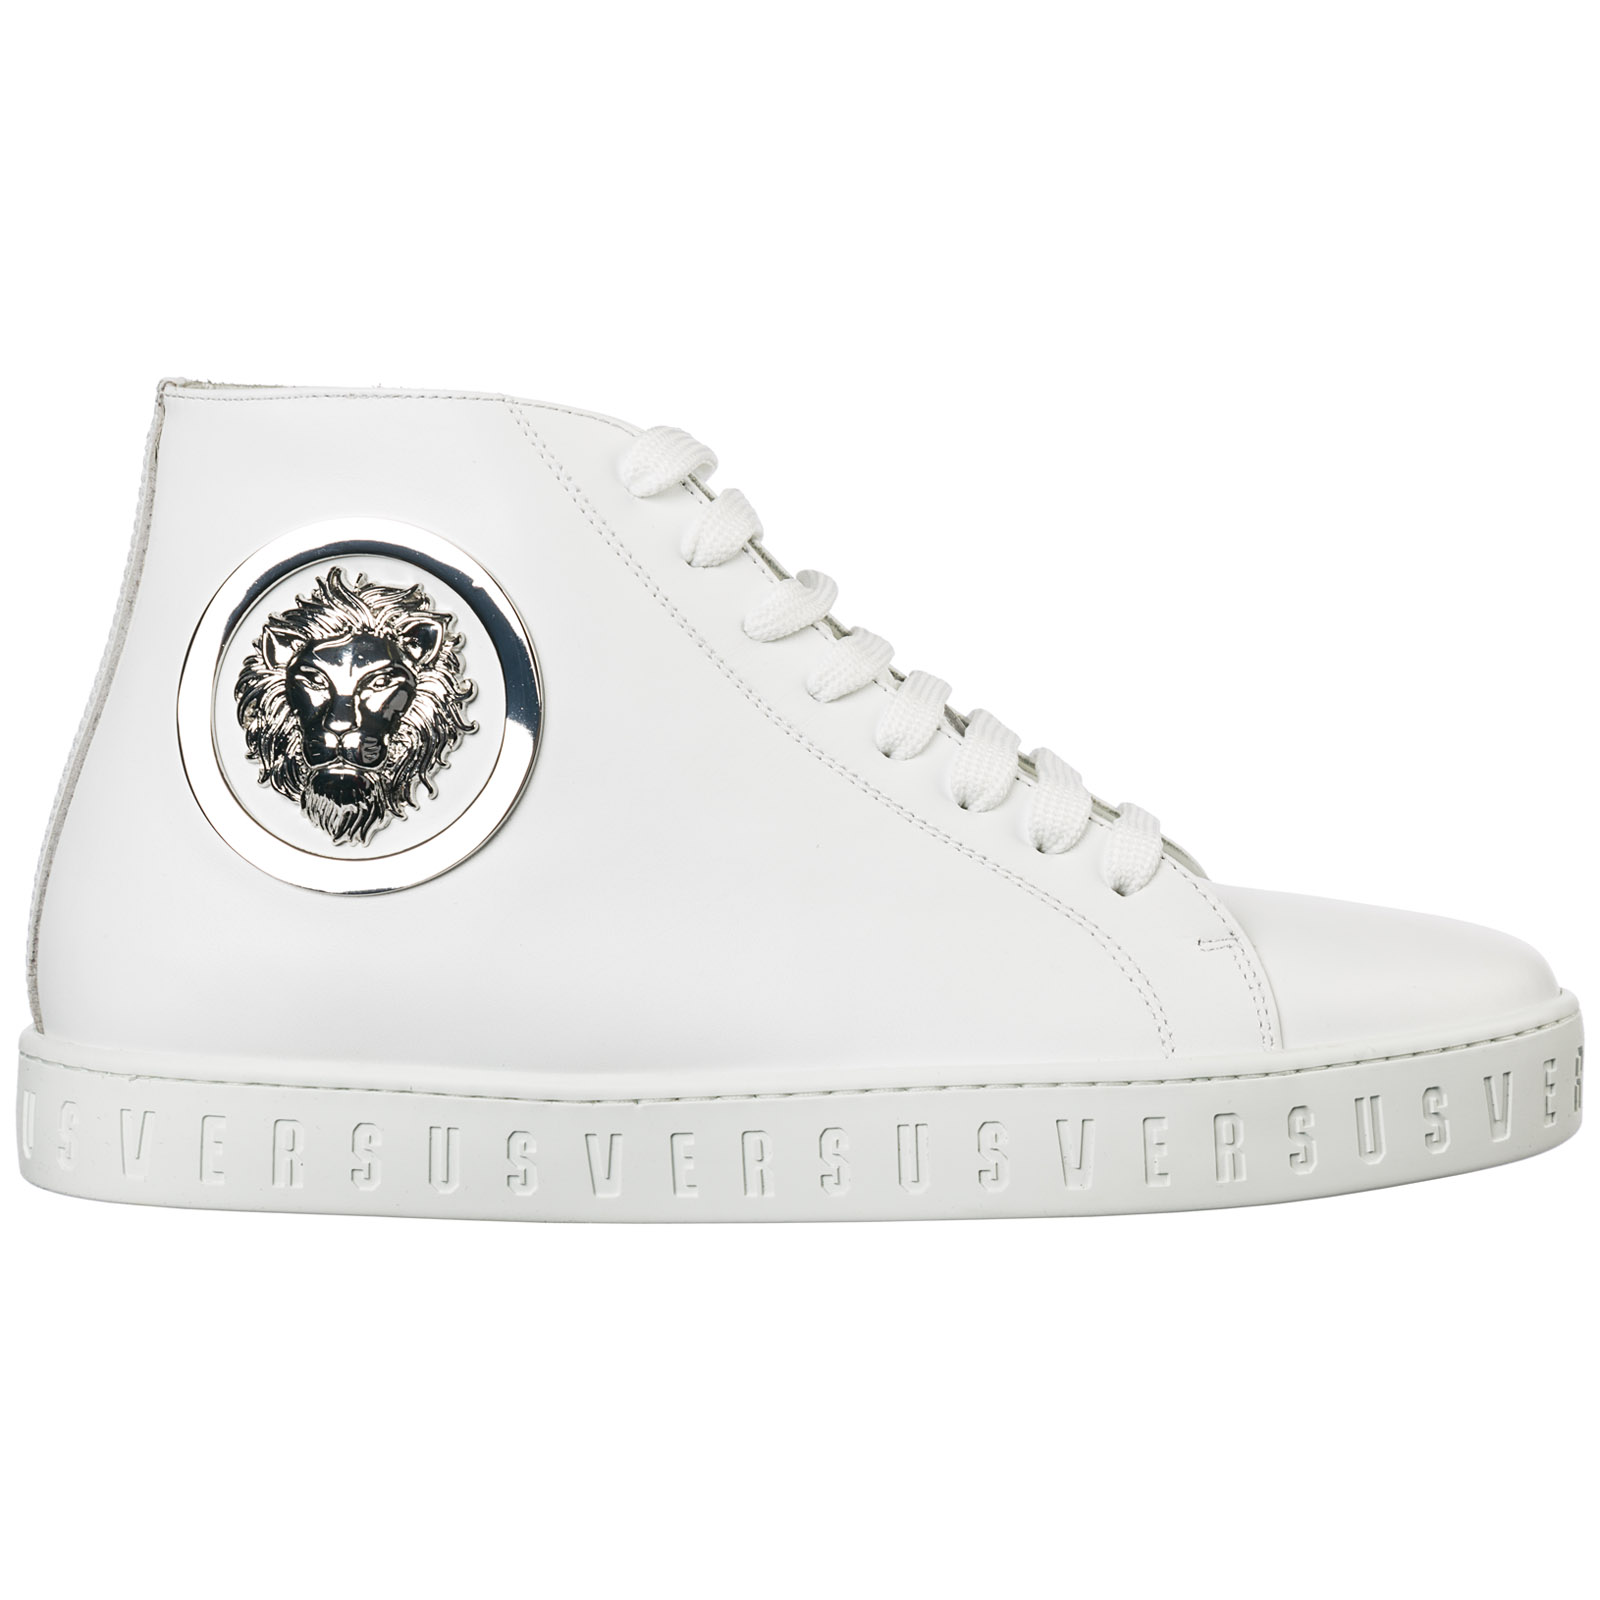 Men's shoes high top leather trainers sneakers lion head